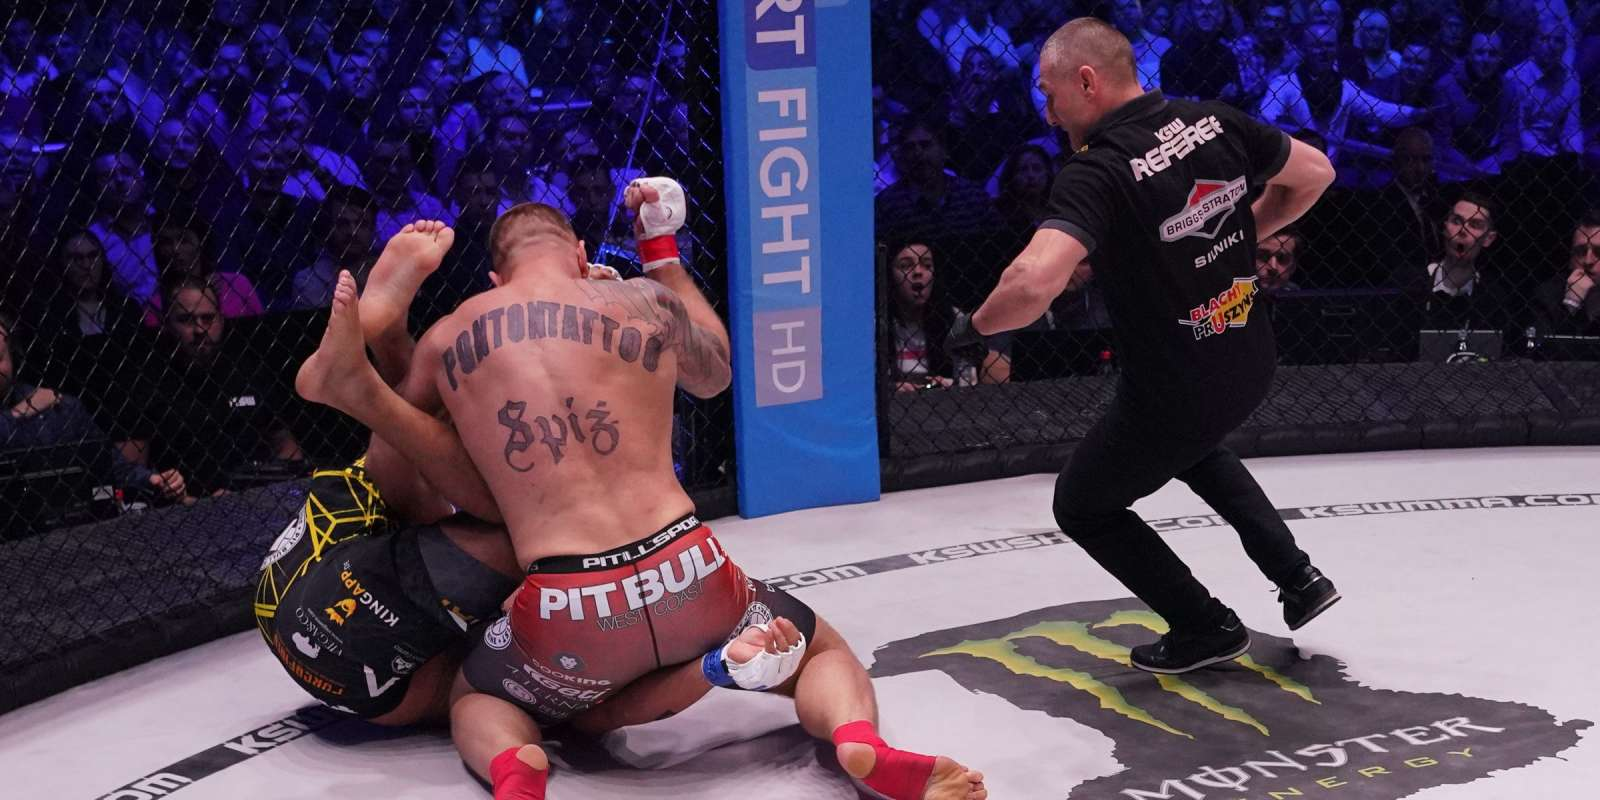 KSW 41 at Spodek in Katowice, Poland - fight / action picture - Michał Andryszak v Fernando Rodrigues Jr